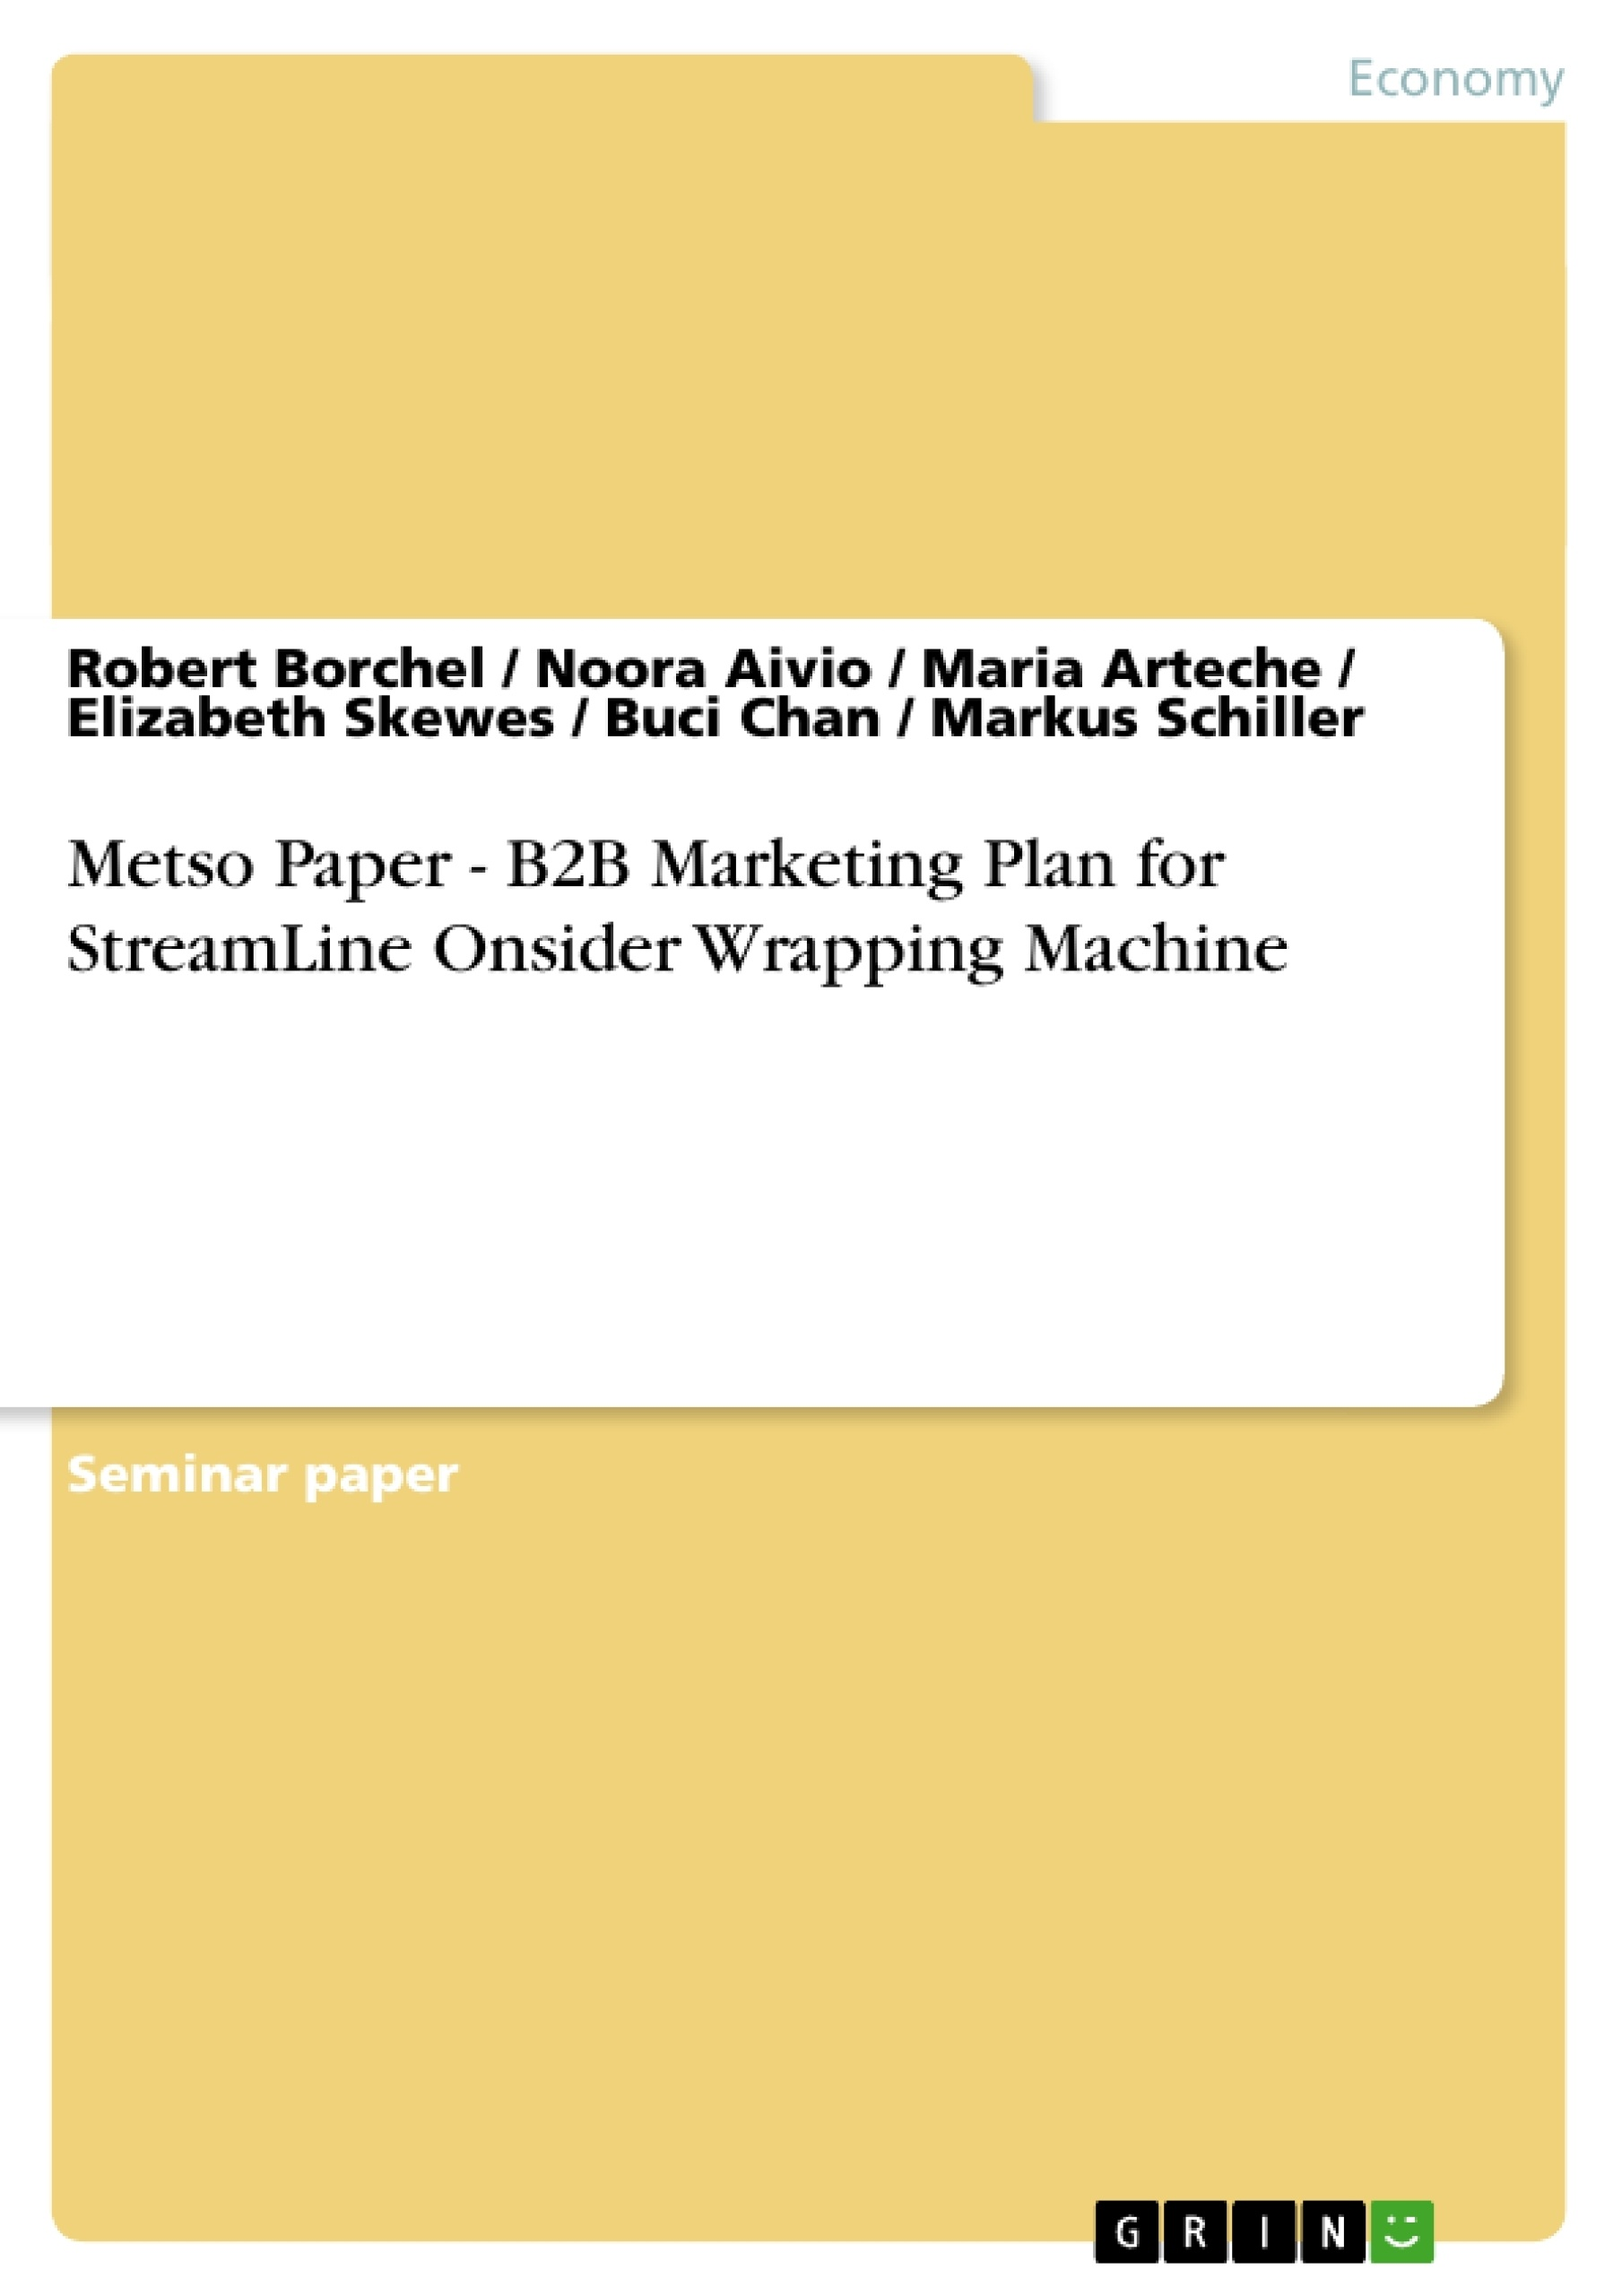 Title: Metso Paper - B2B Marketing Plan for StreamLine Onsider Wrapping Machine